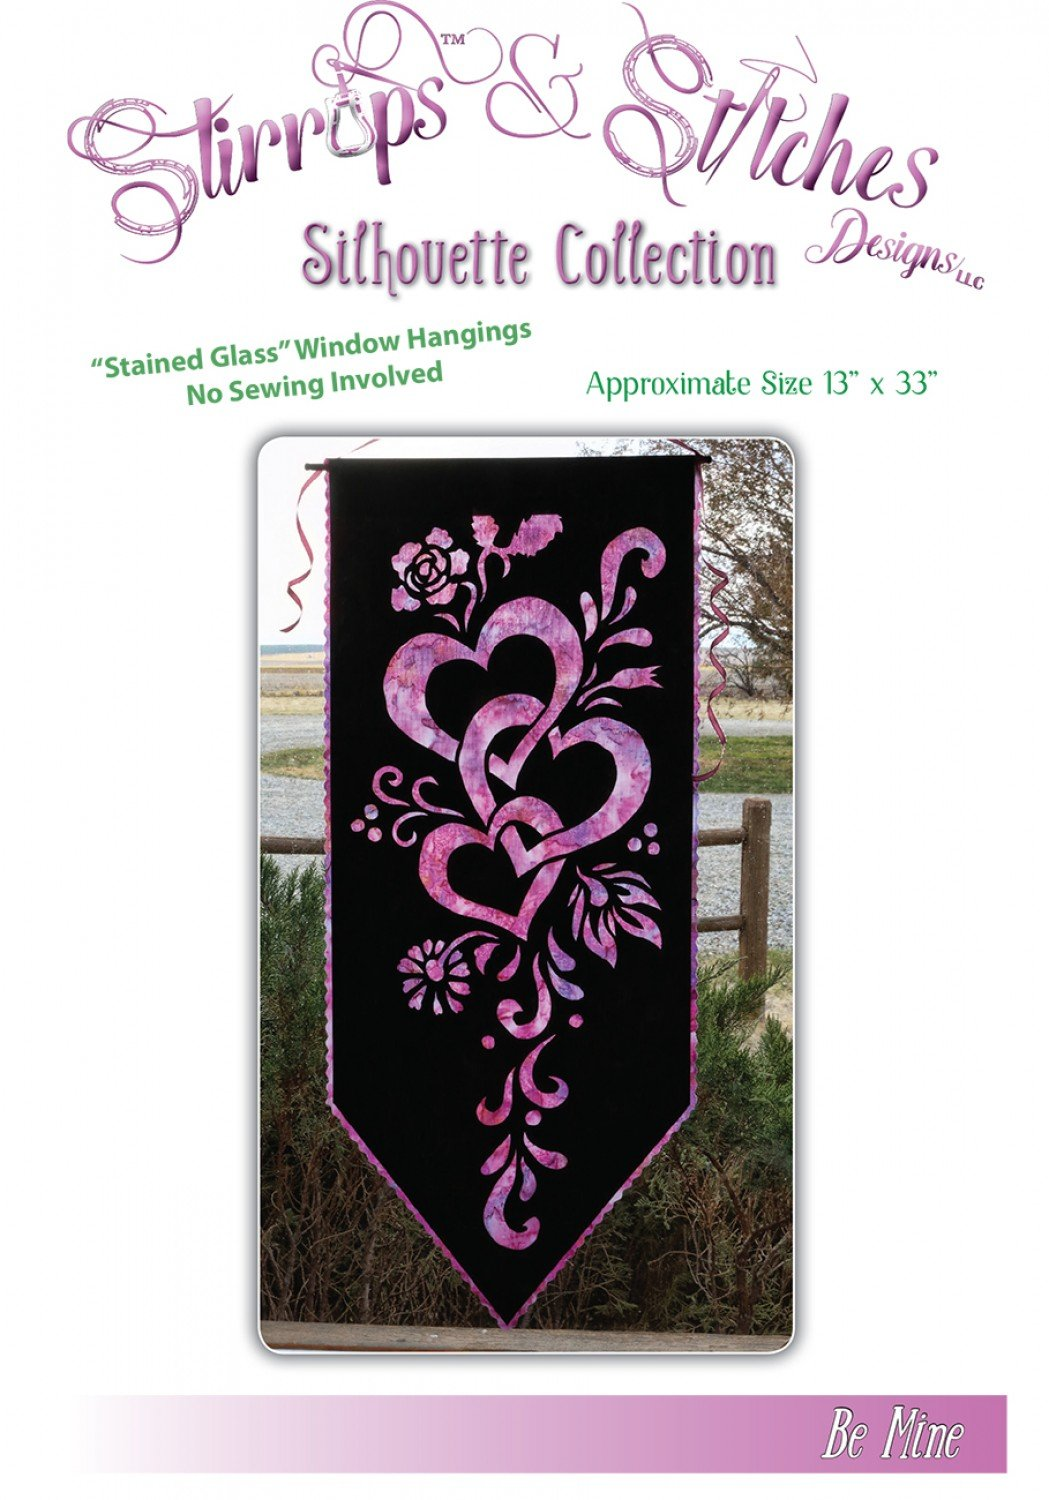 Be Mine Pattern - Stirrups & Stitches Designs - BM-2017